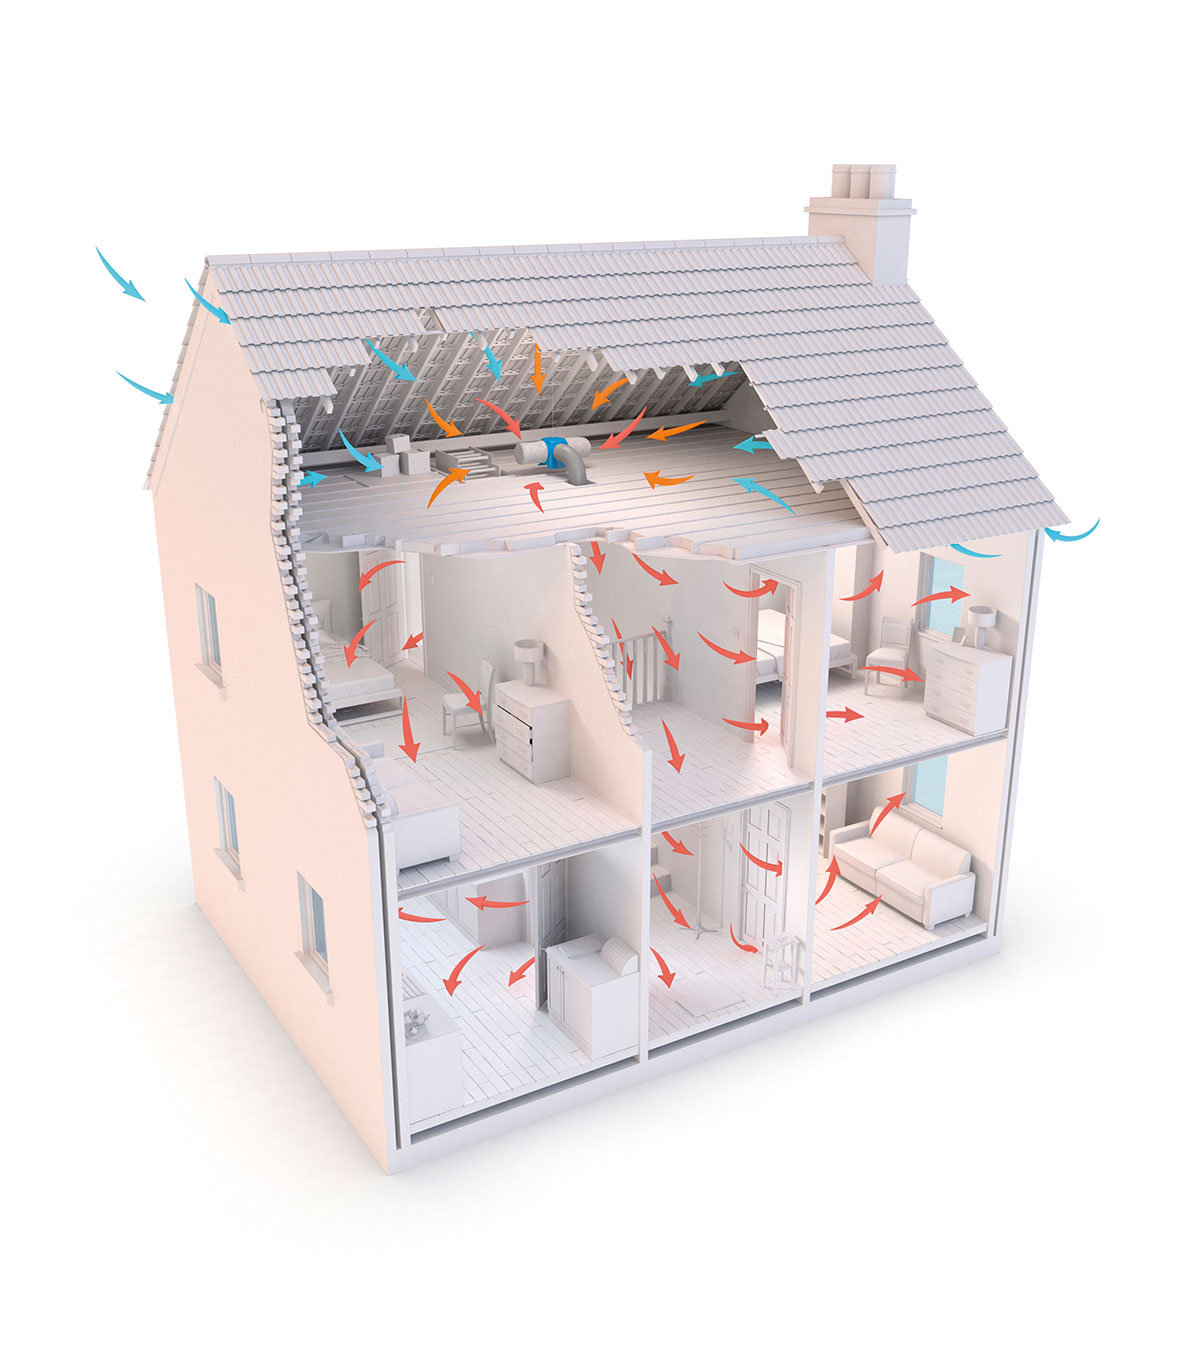 The system can clean your home's air